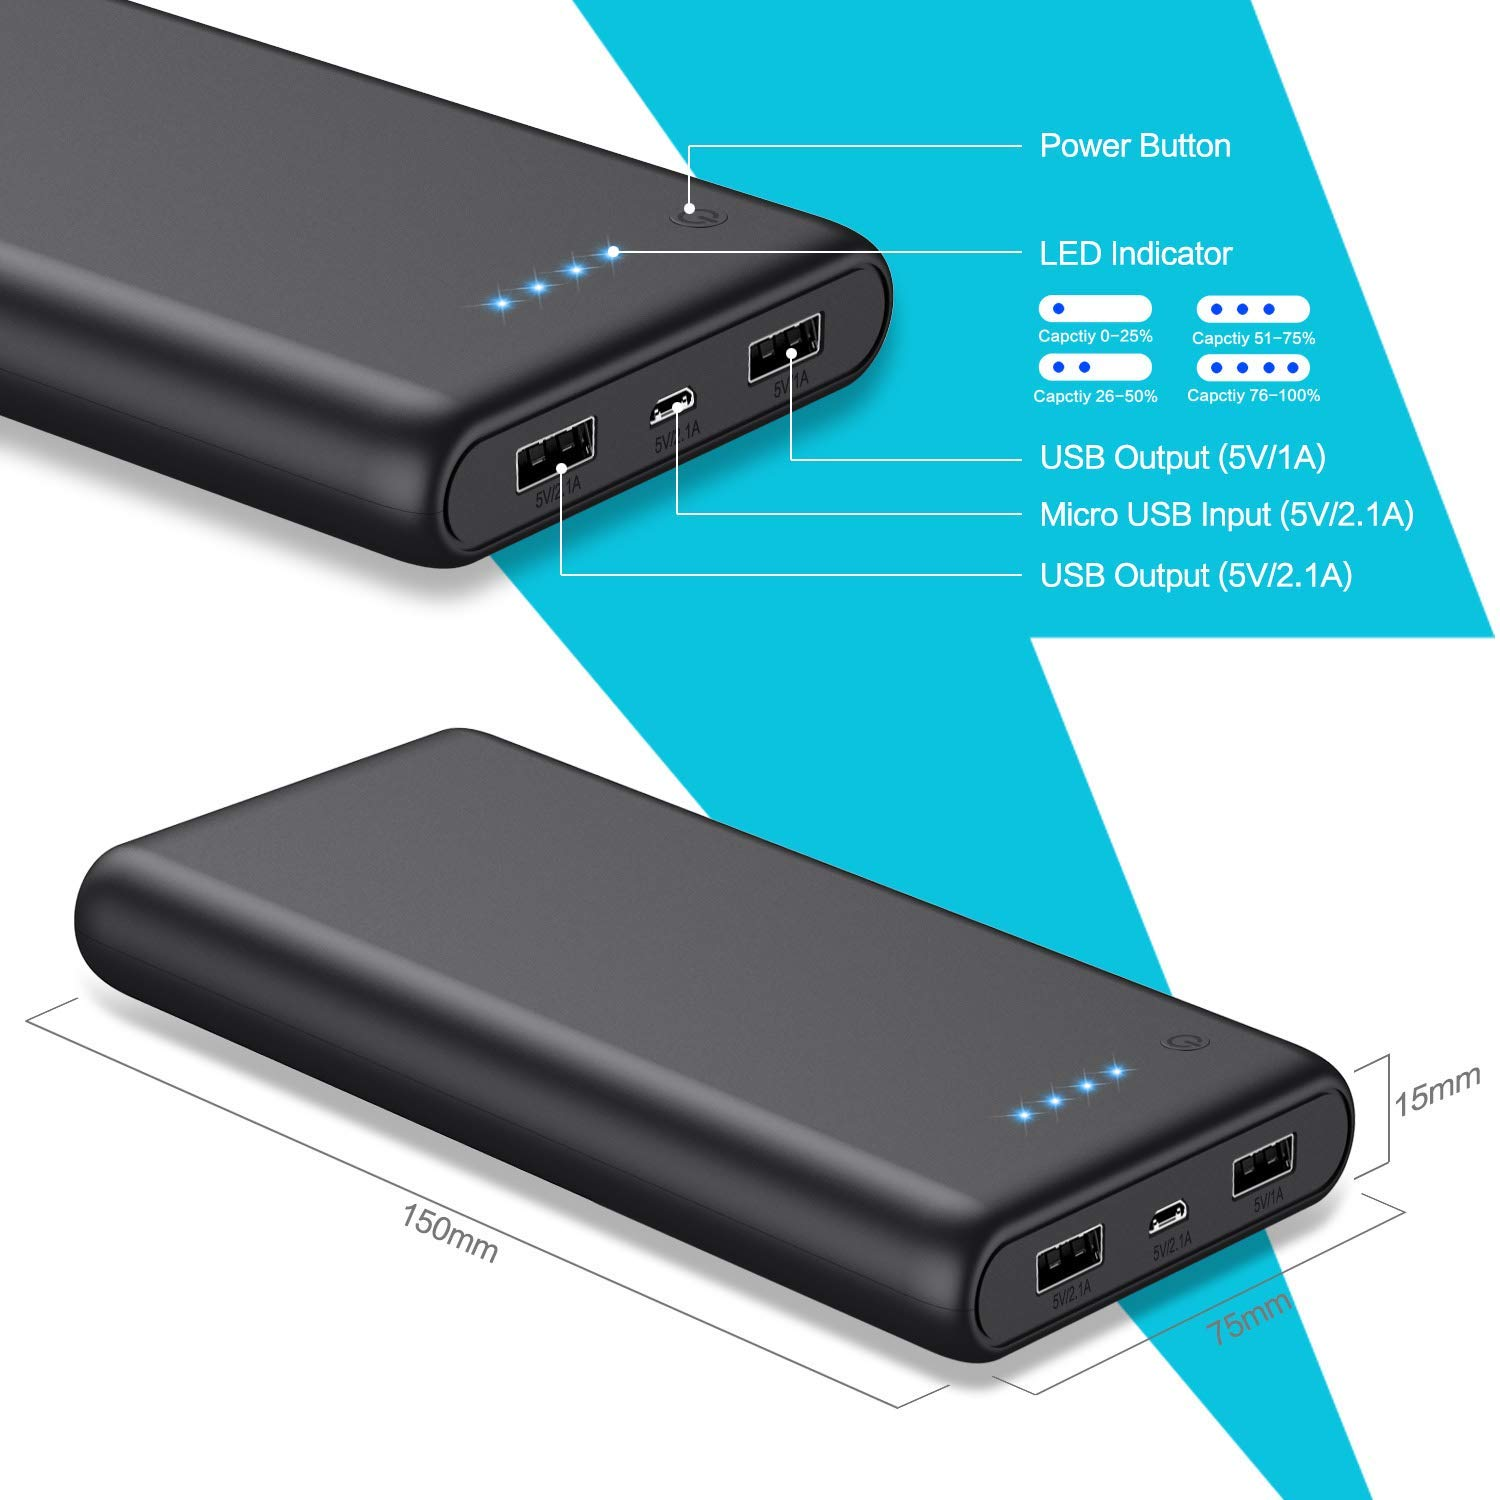 Portable Charger 25800mAh Power Bank Super High Capacity Lighter External Battery Pack Dual Output Ports Recharging Phone Charger for Android Phone Tablet etc Smart Phone